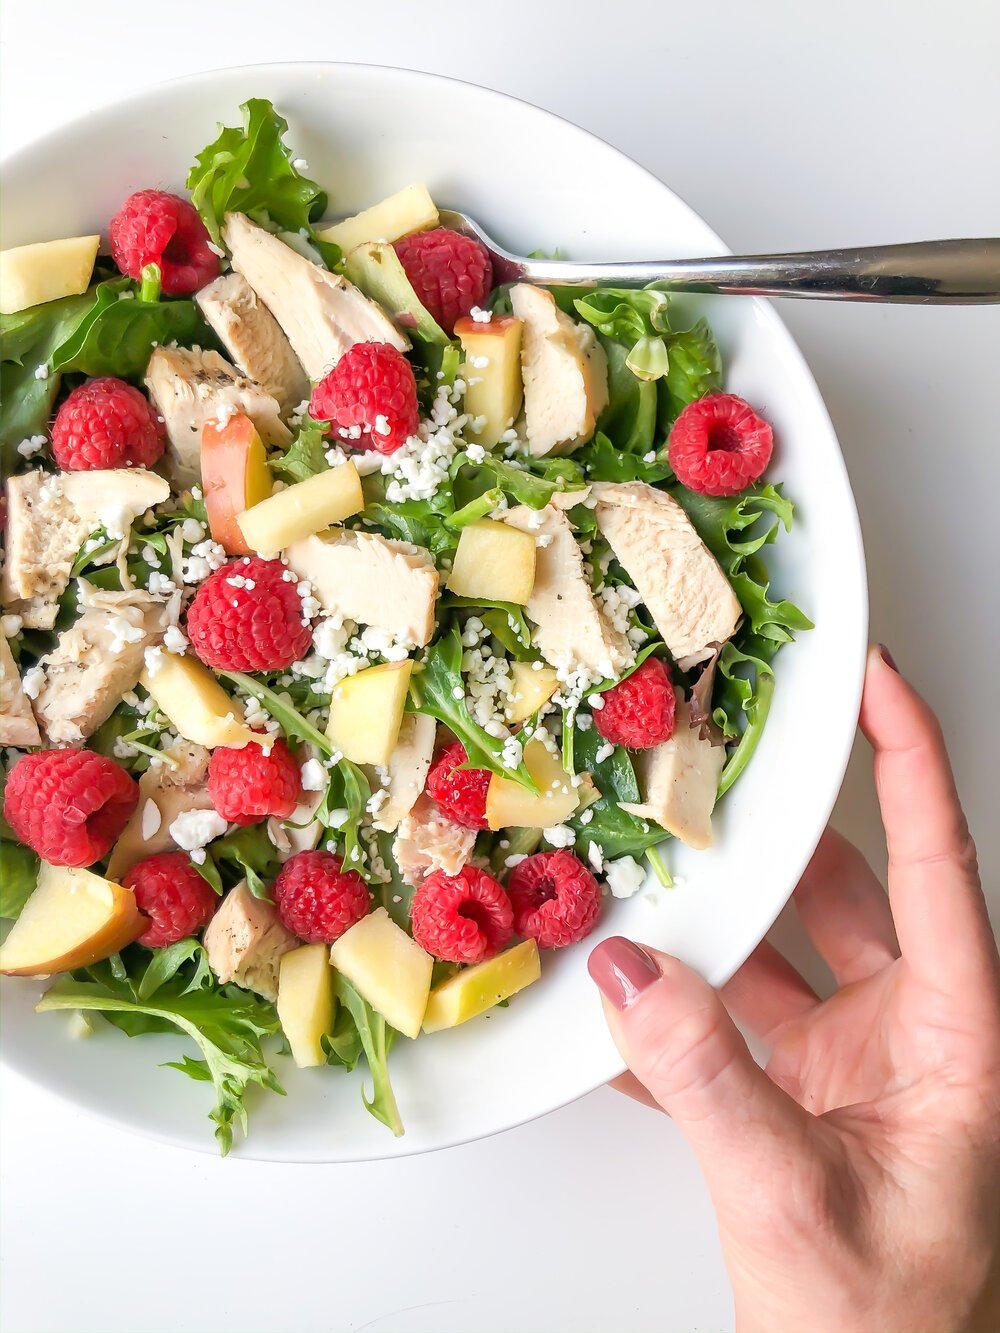 Apple, Raspberry, Mixed Greens Salad